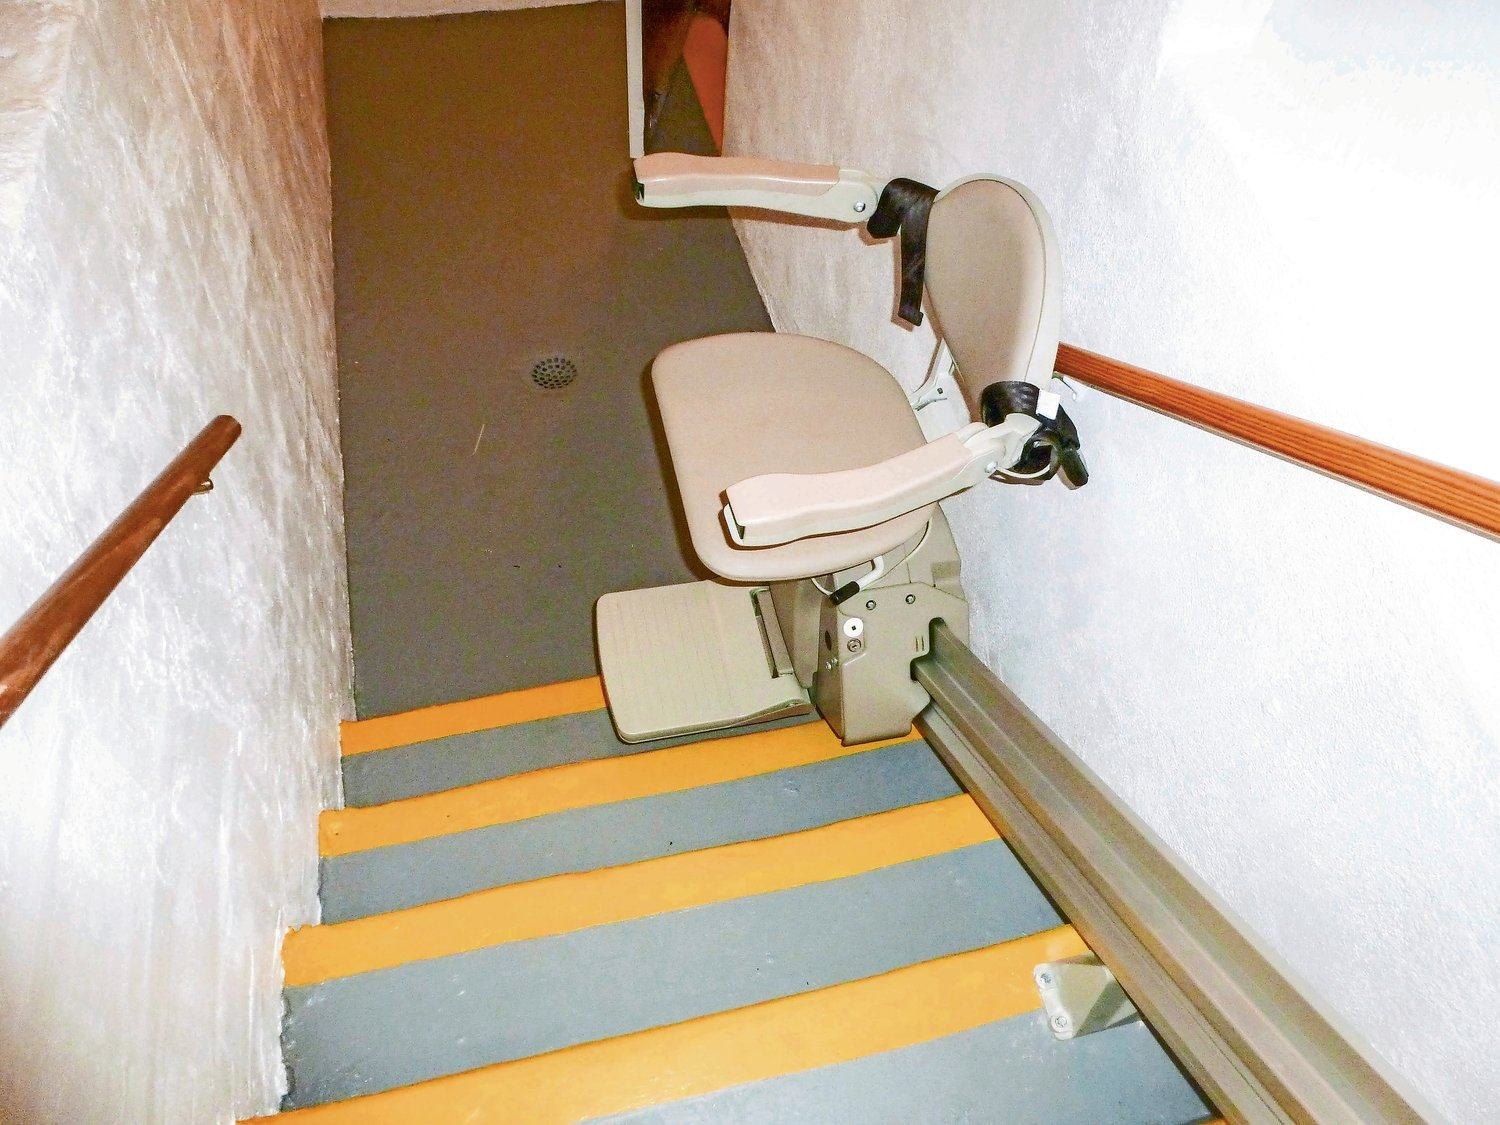 The stair lift was installed at Malverne American Legion Post 44 on Nov. 13.